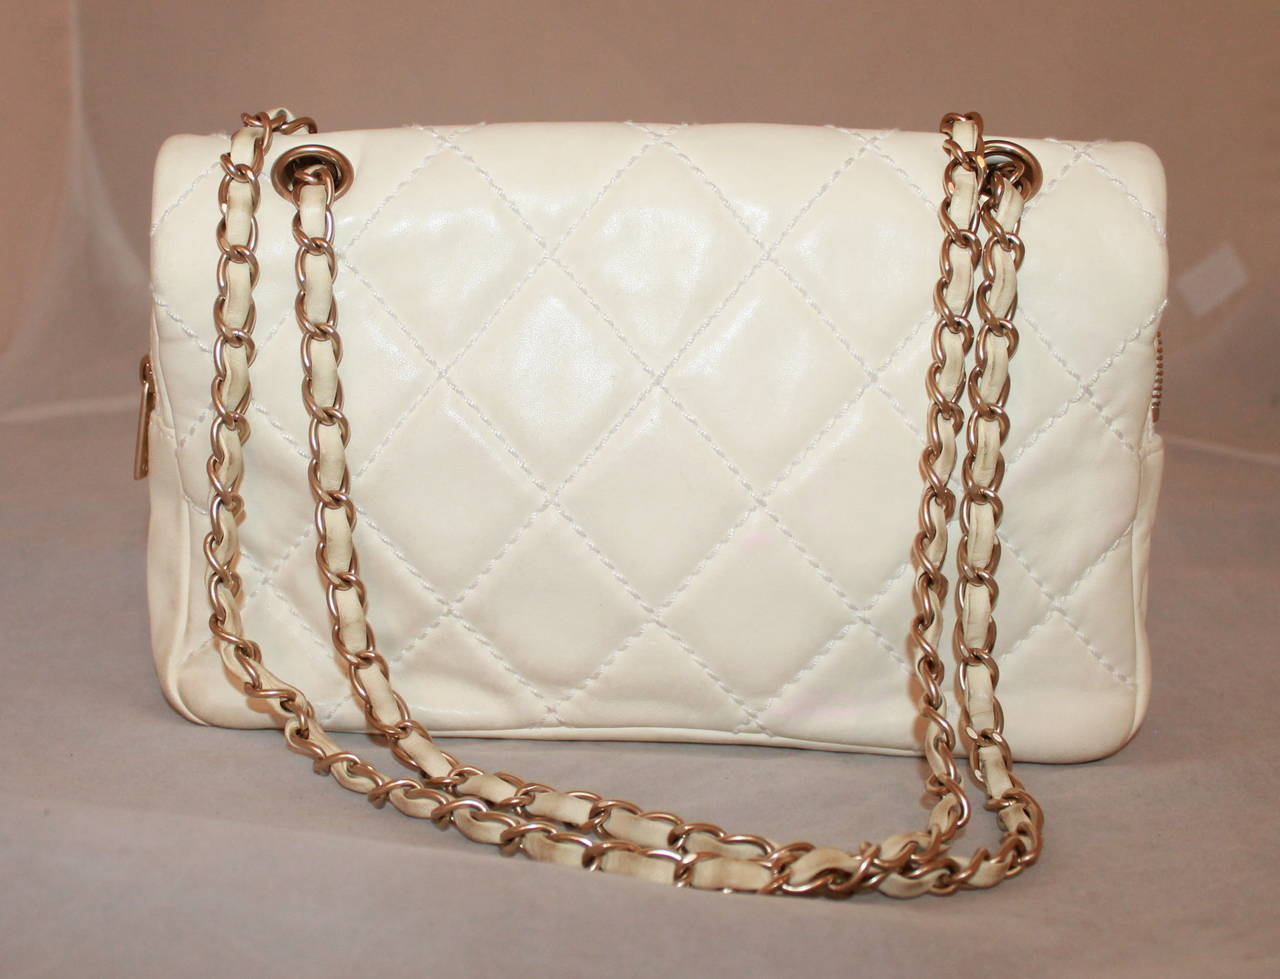 Chanel Ivory Quilted Leather Handbag with Pink & Red Camellia - circa 2005 3